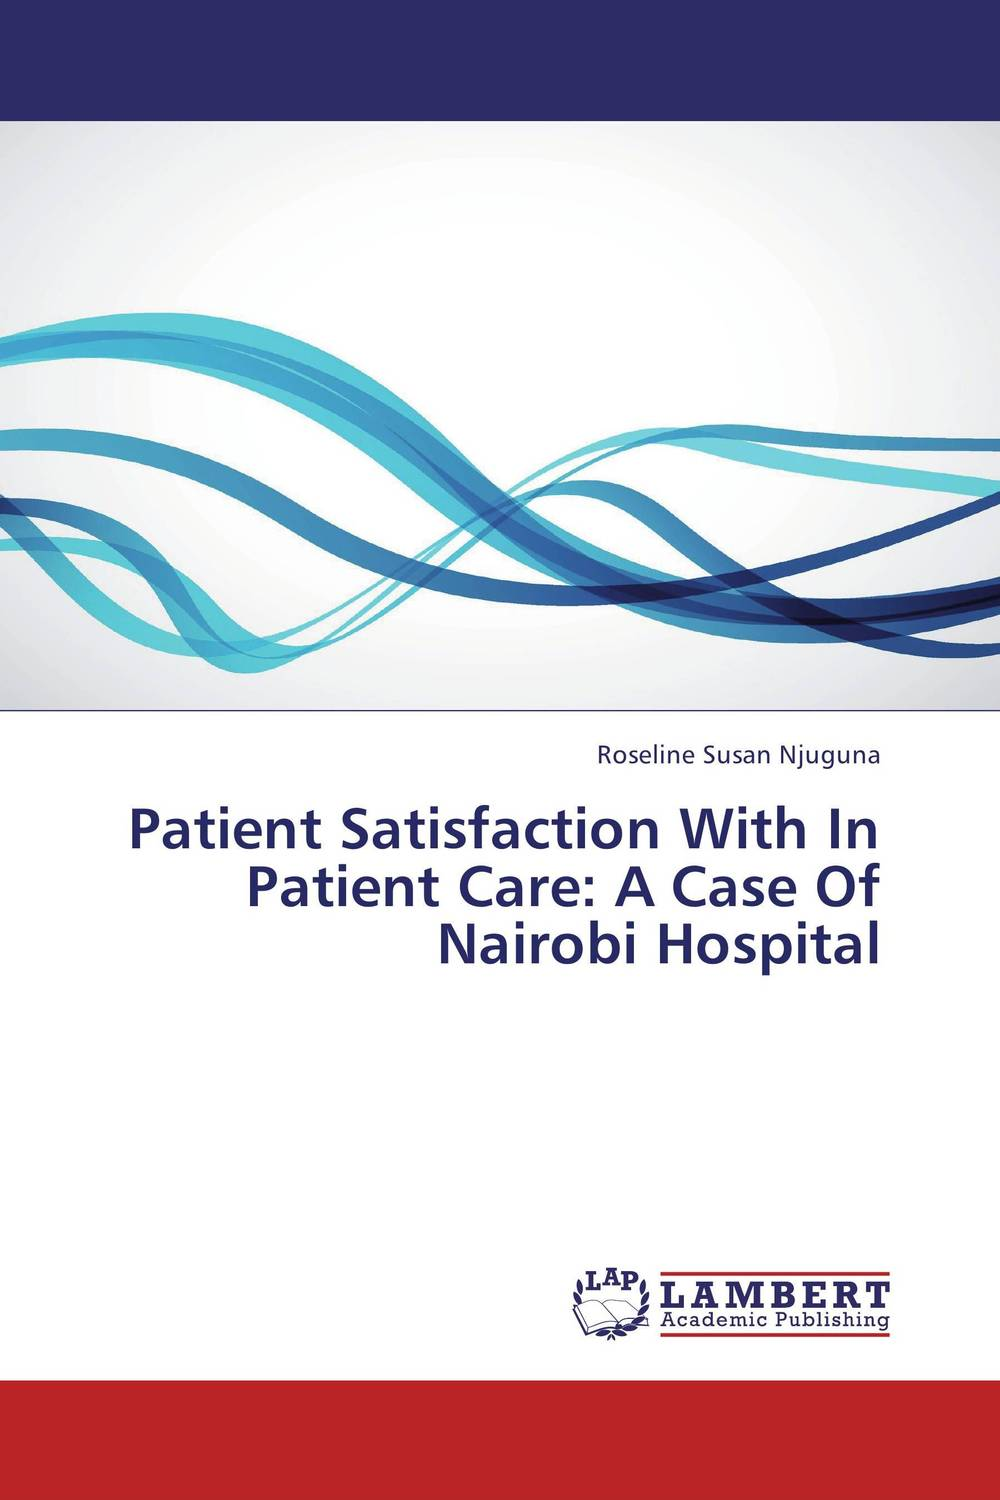 Patient Satisfaction With In Patient Care: A Case Of Nairobi Hospital analysis of patient satisfaction